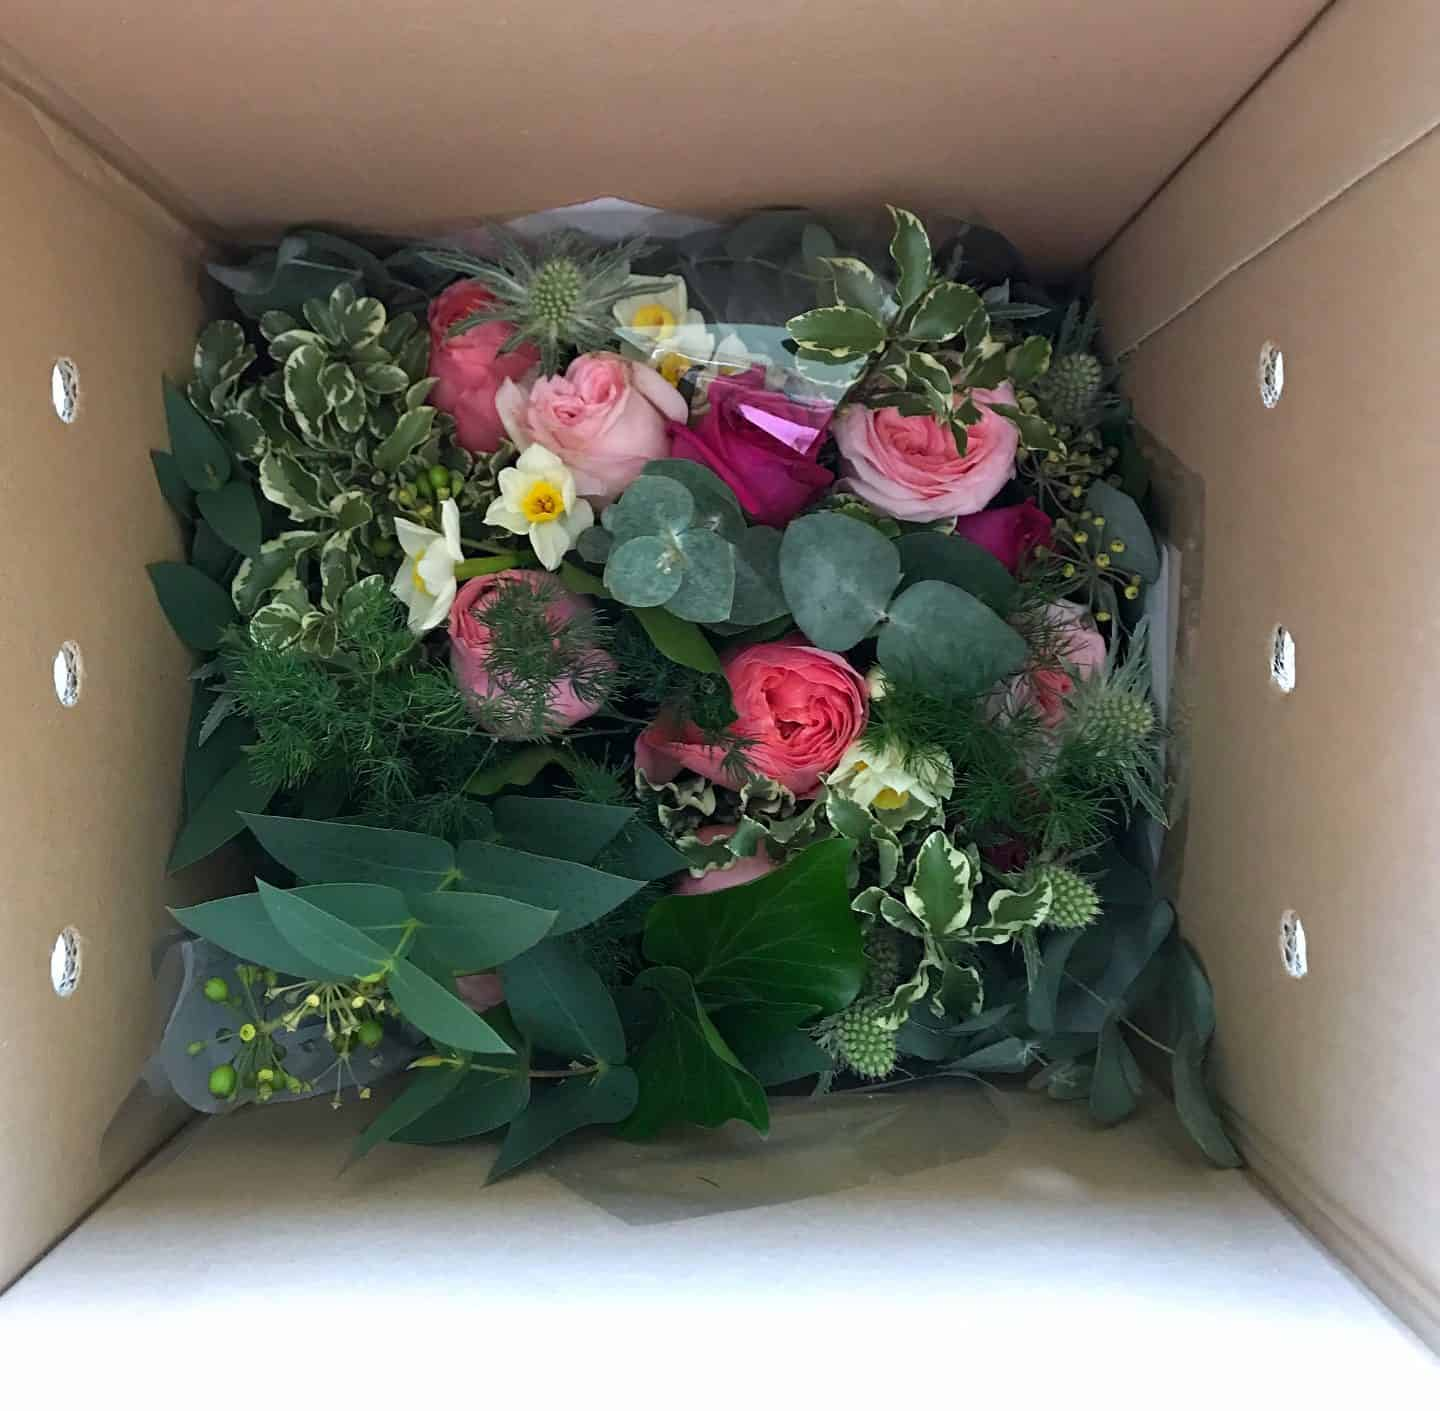 Sustainable flowers in their delivery box from The Real Flower Company